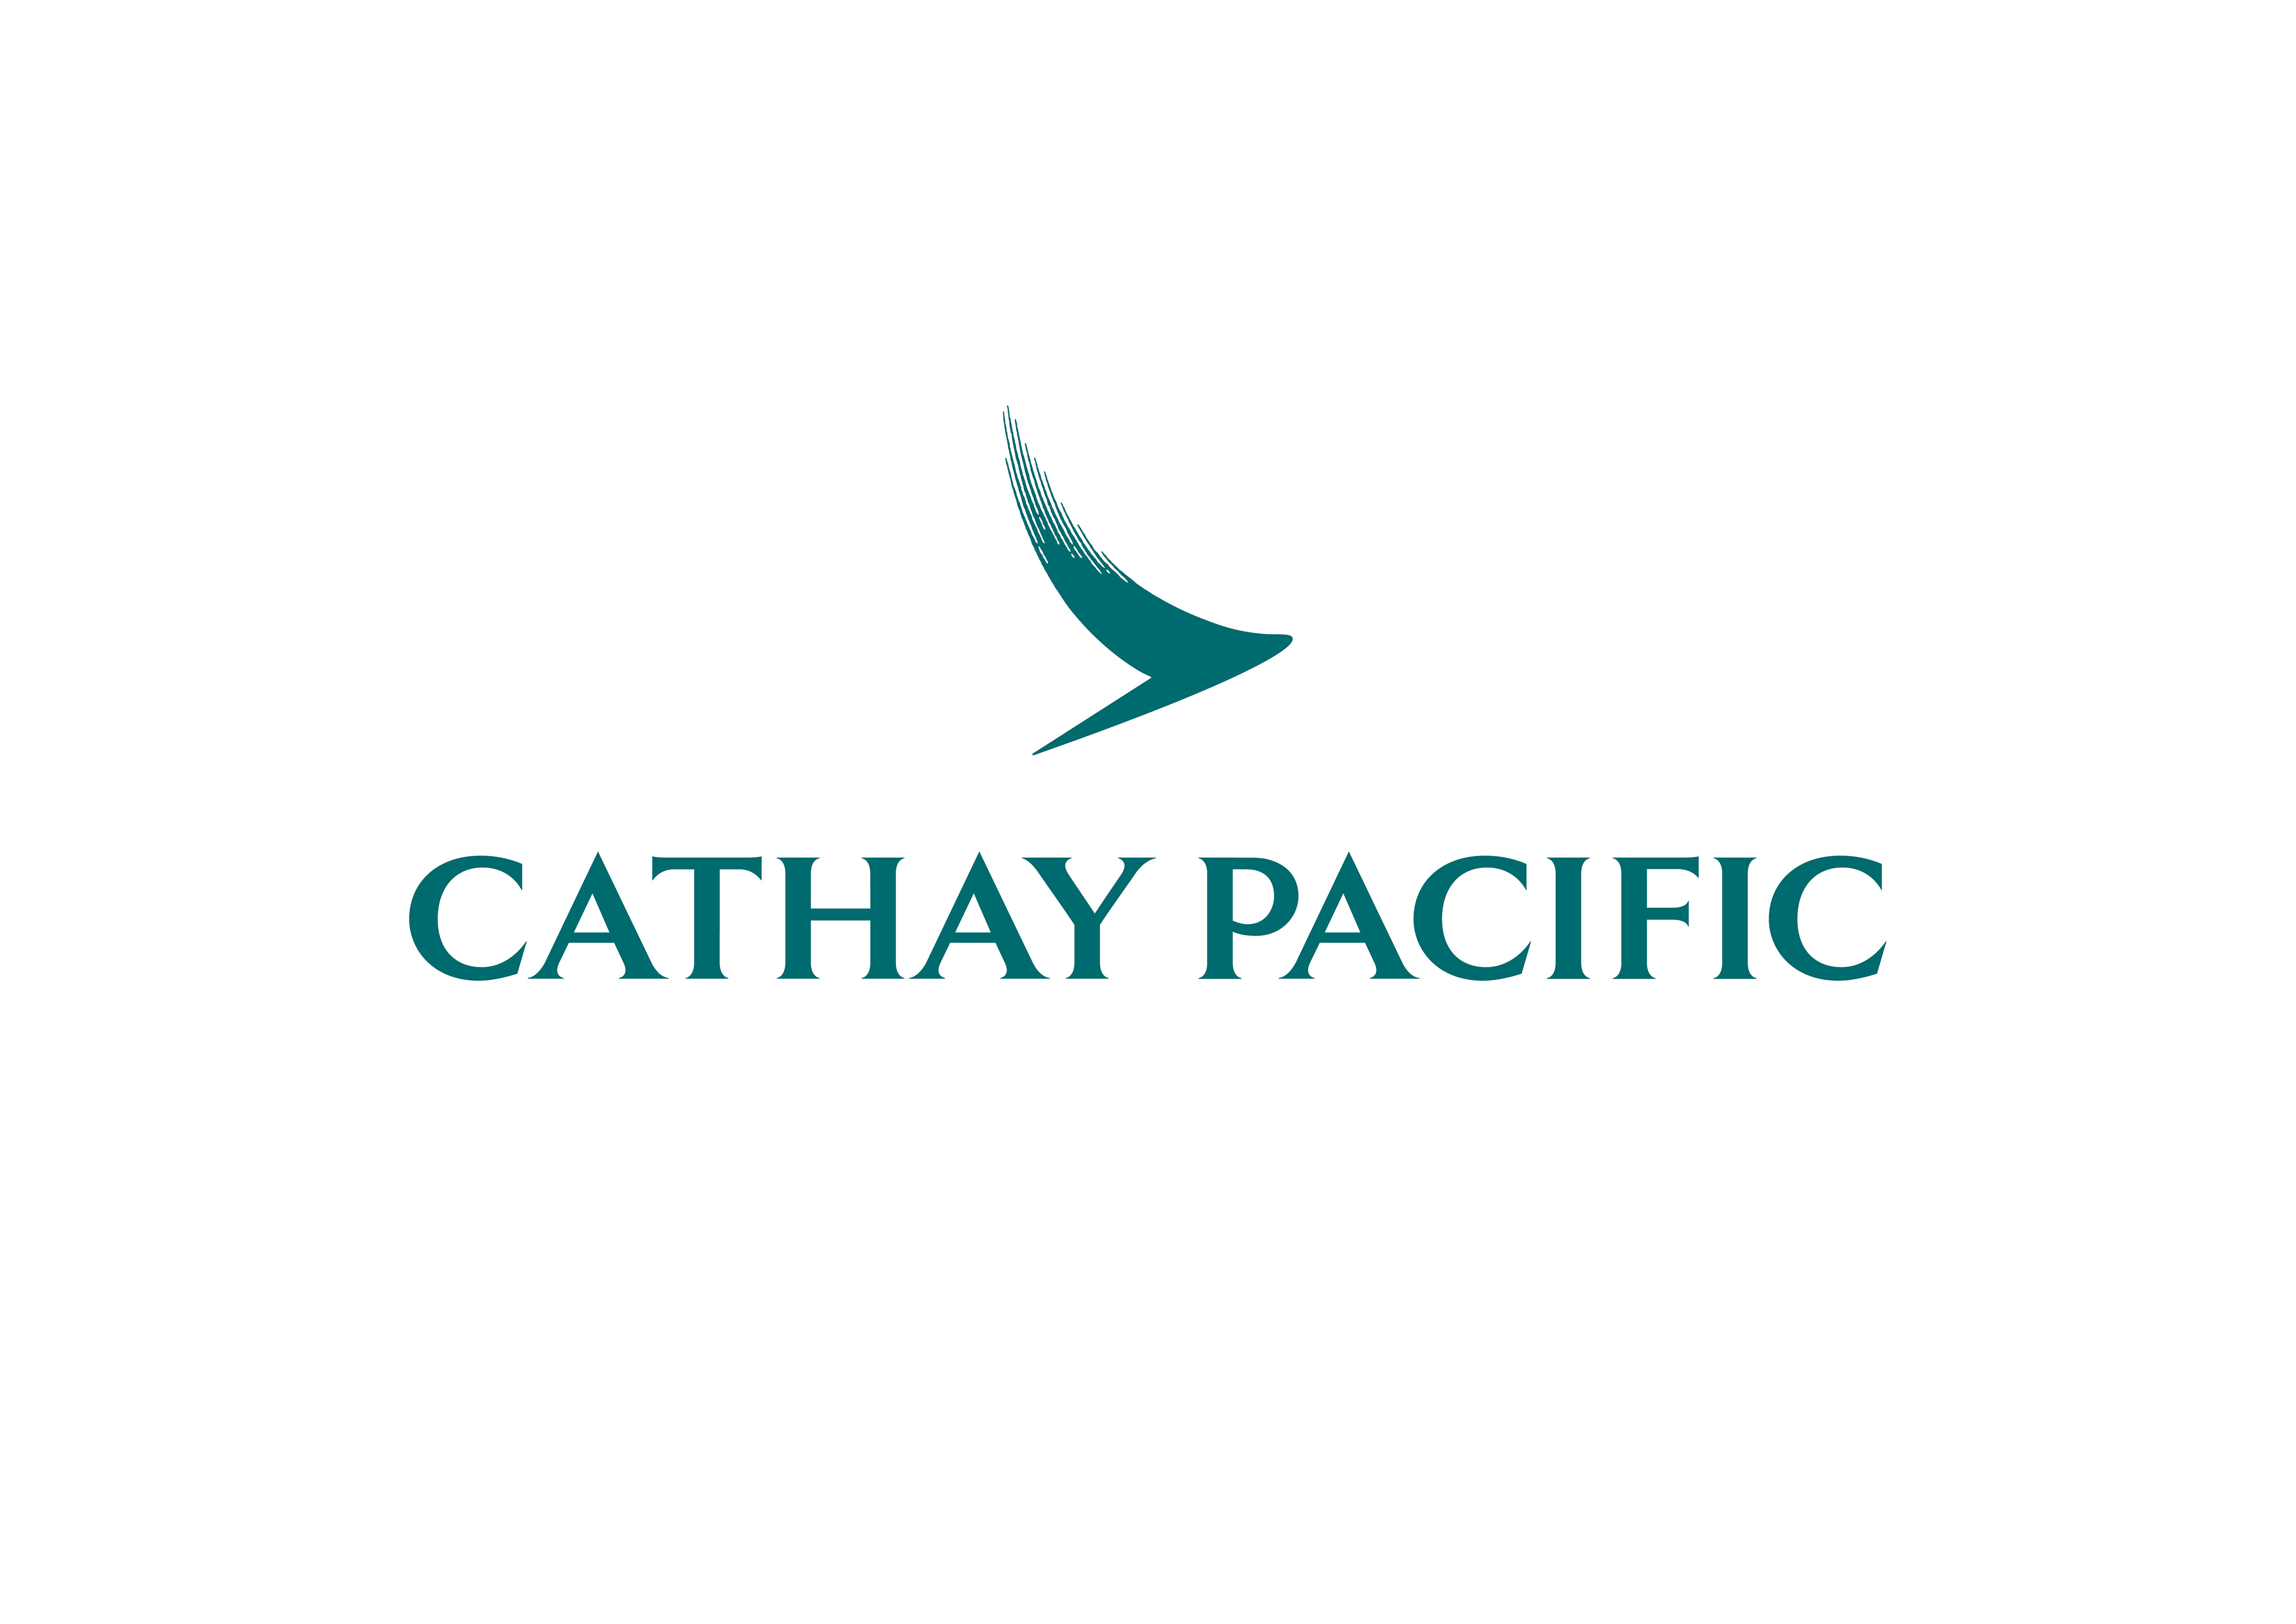 Design A Cabin Cathay Pacific Logo Thedesignair